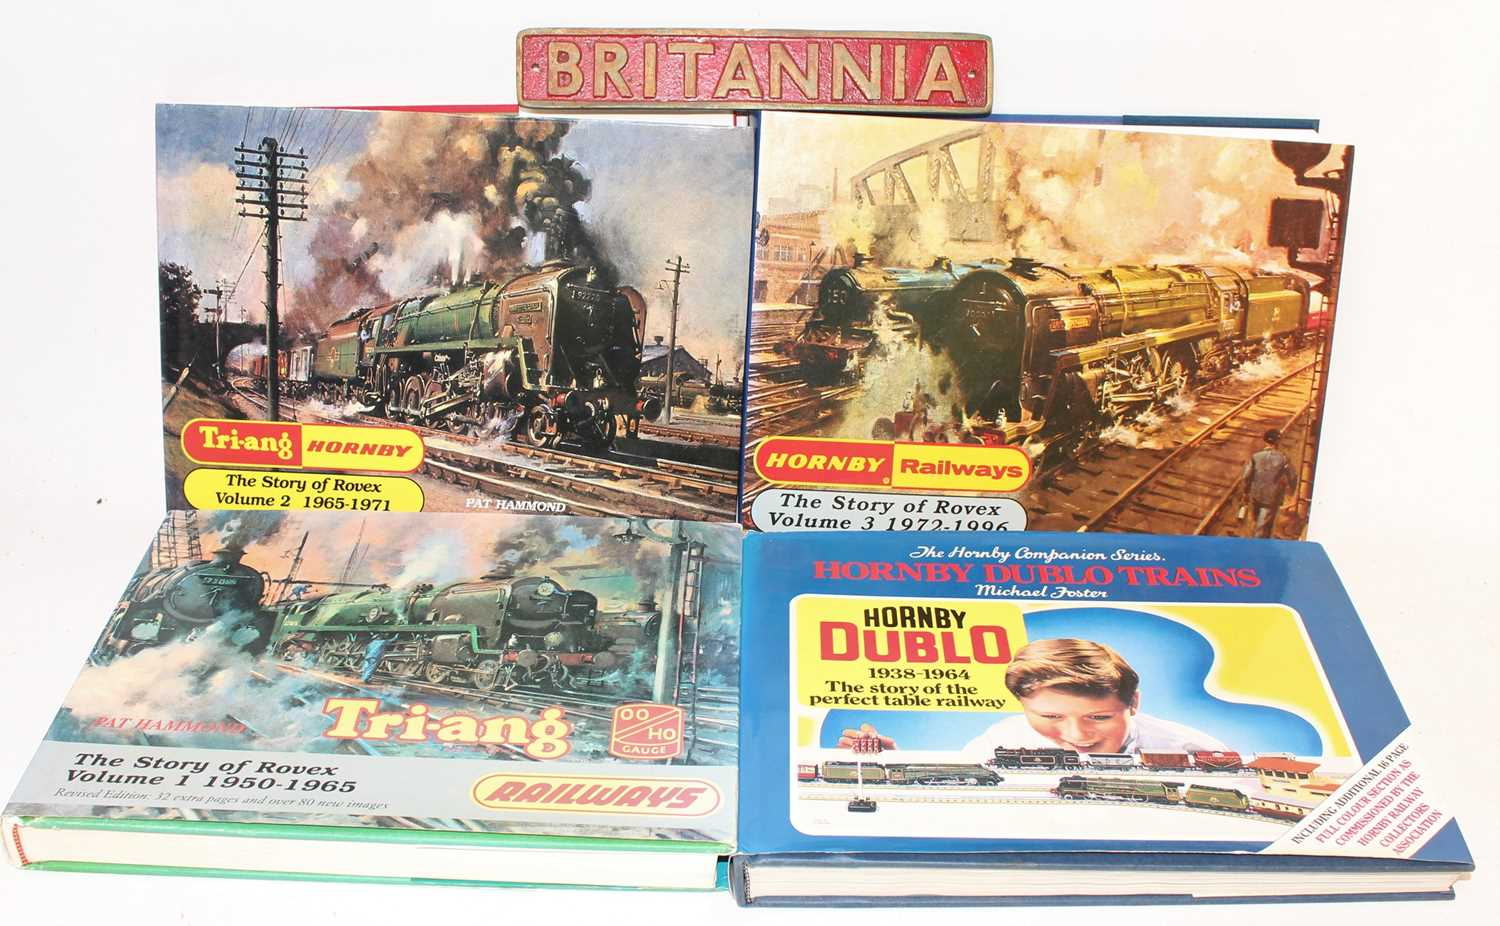 A collection of Hornby and Triang Hornby hardbacked books to include Hornby Dublo Trains by